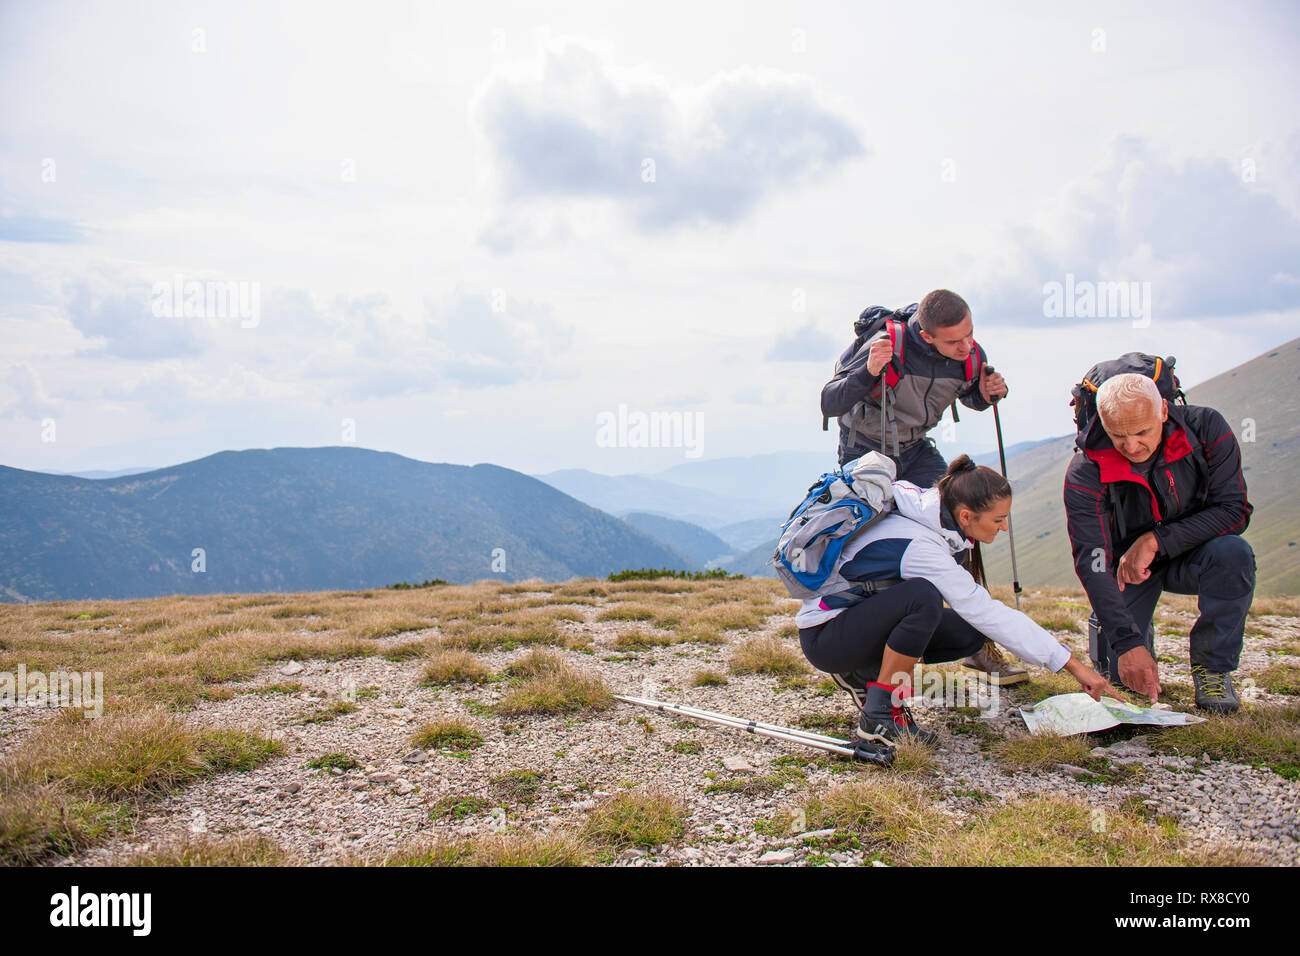 Adventure Travel Tourism Hike And People Concept Group Of Smiling Friends With Backpacks And Map Outdoors Stock Photo Alamy